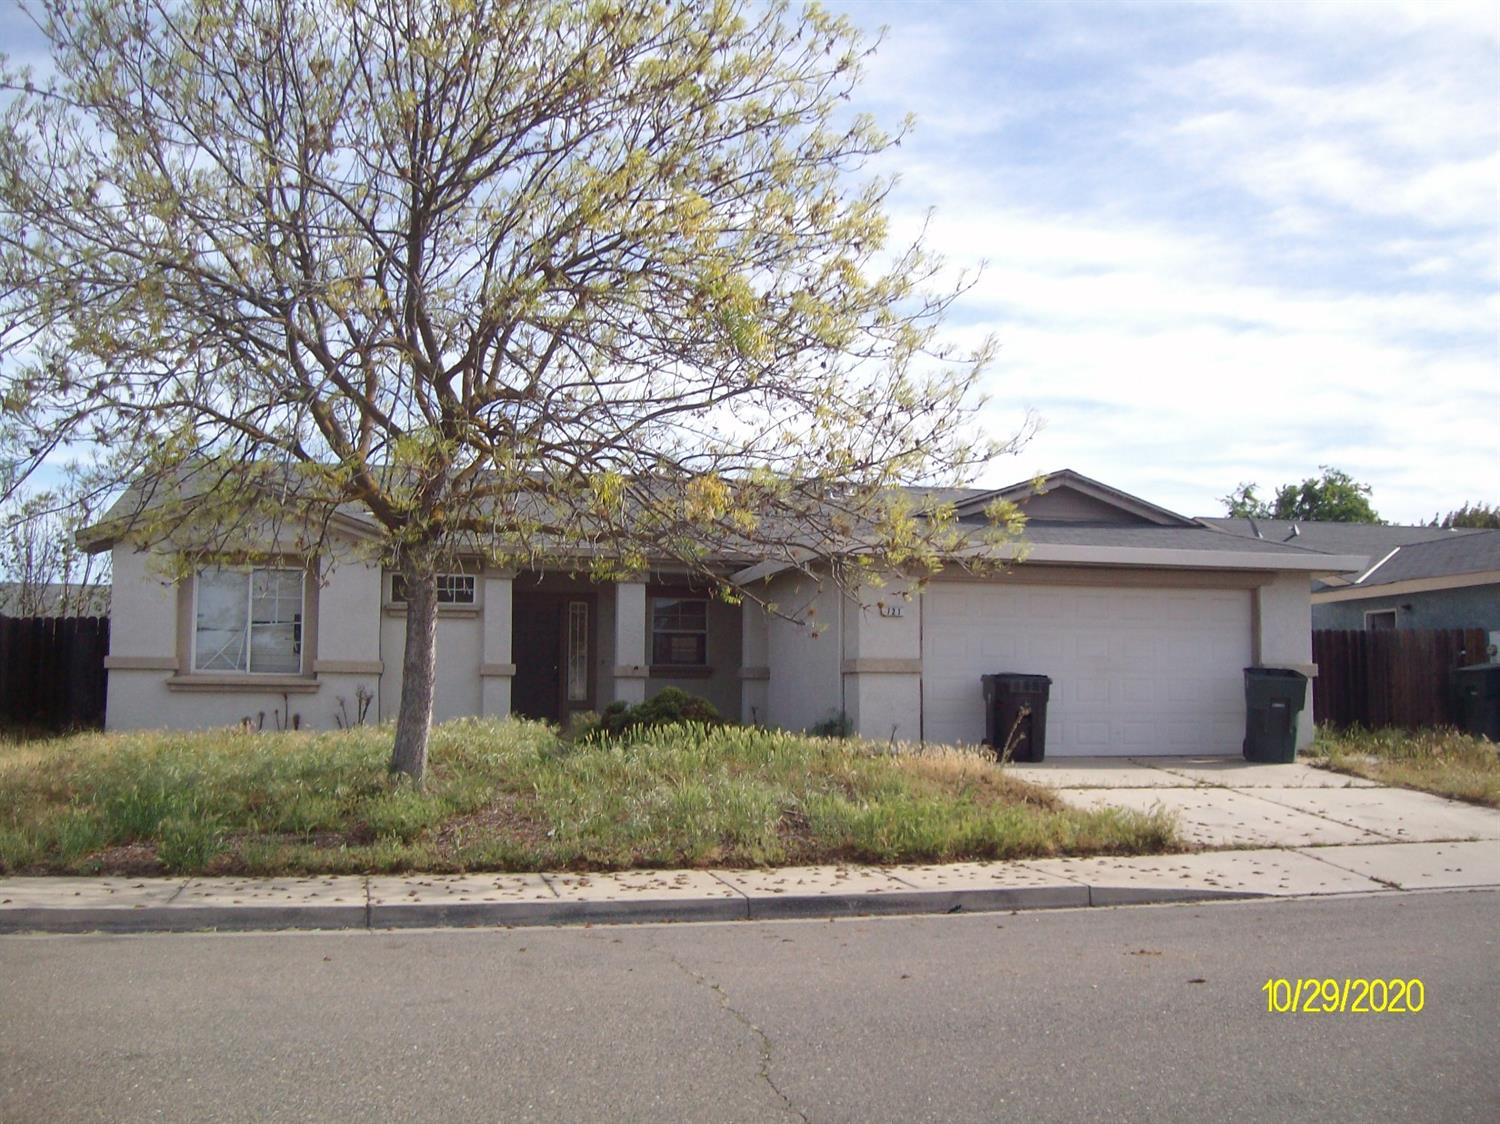 Great for 1st time homebuyer or investor. Needs TLC throughout. Open floor plan, close to shopping, medical, high school.